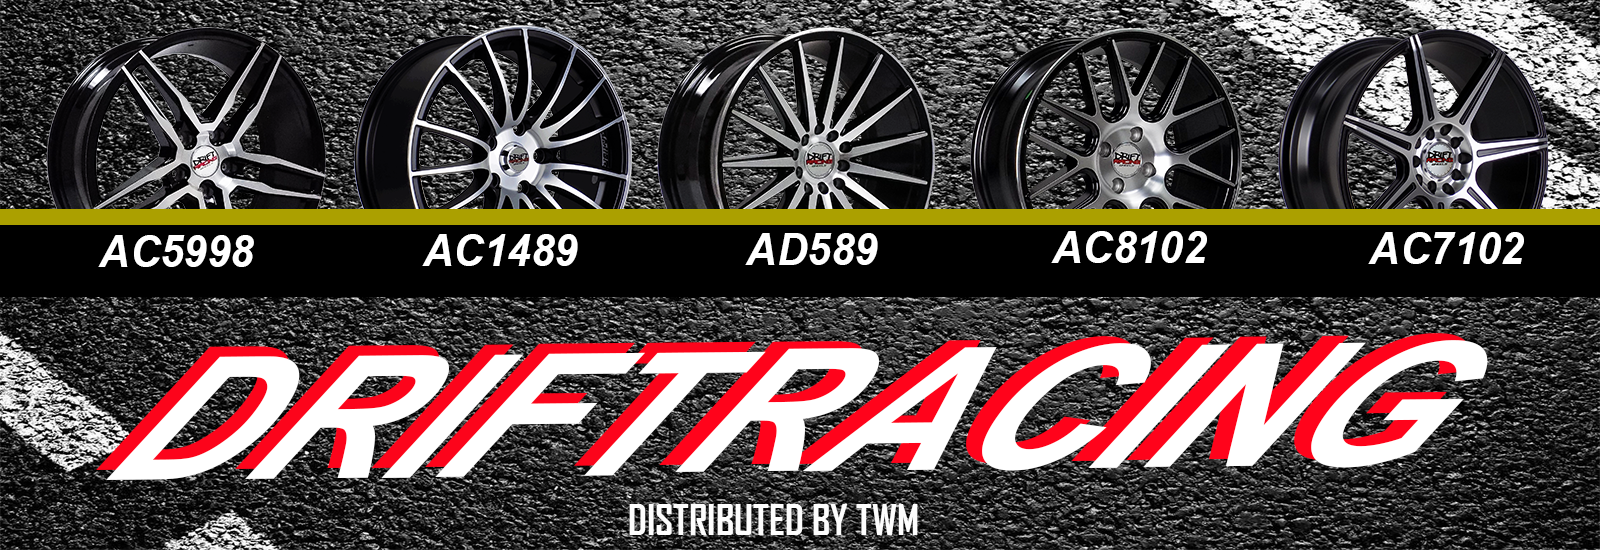 DRIFT RACING WHEELS